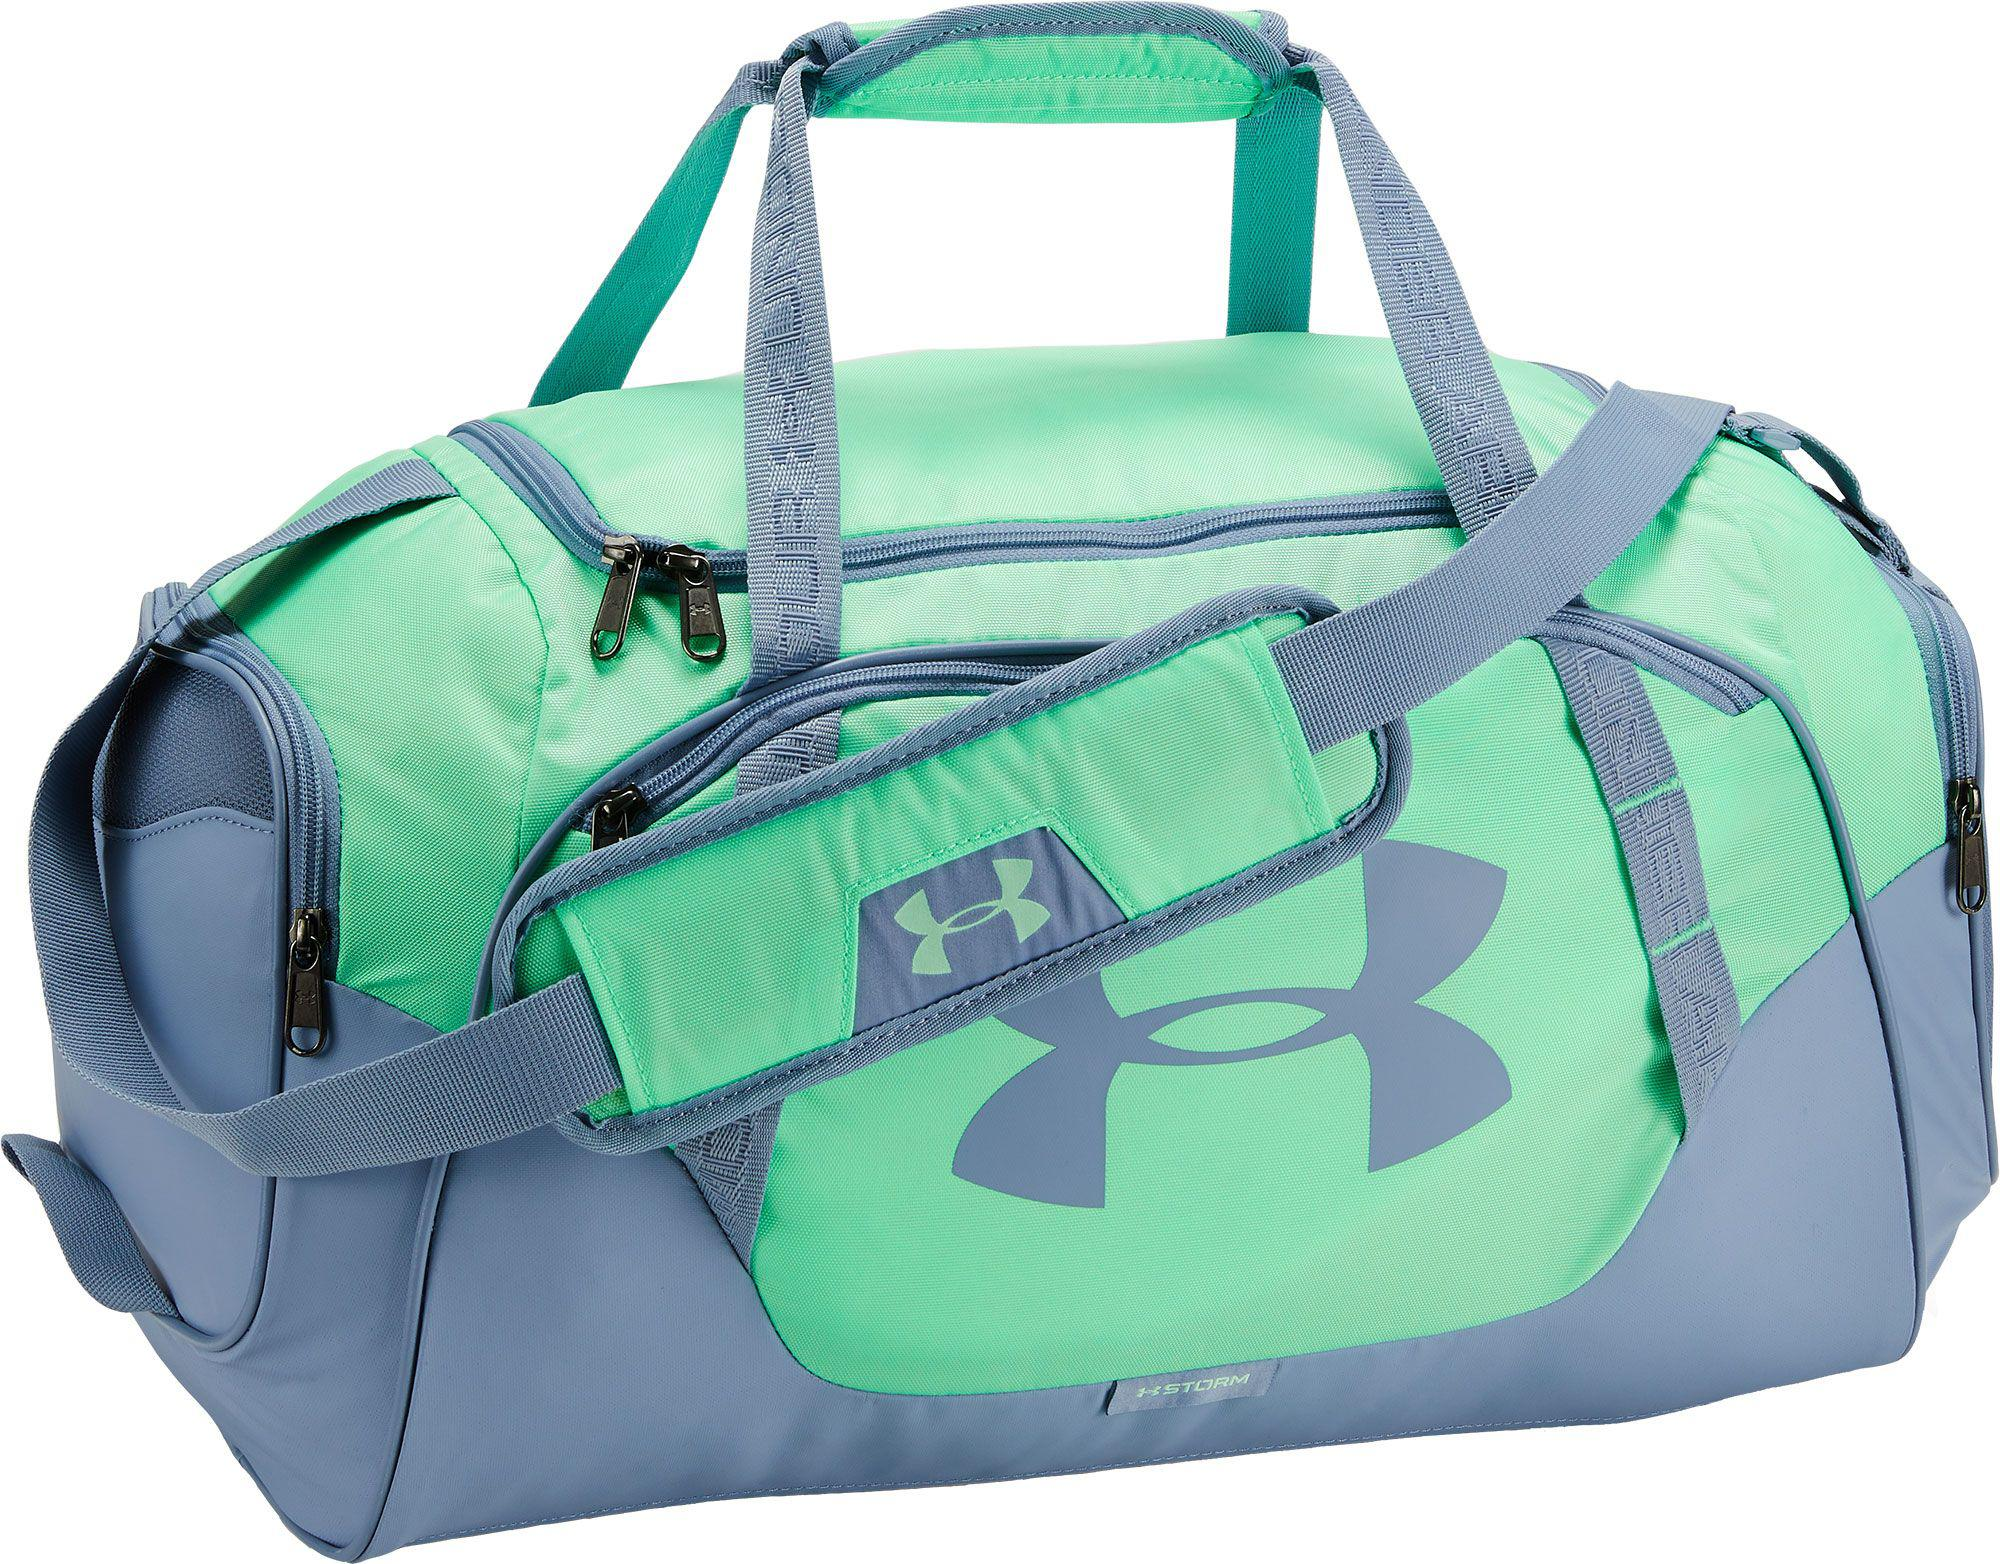 7ed6c6a4c Under Armour Undeniable 3.0 Small Duffle Bag in Green for Men - Lyst